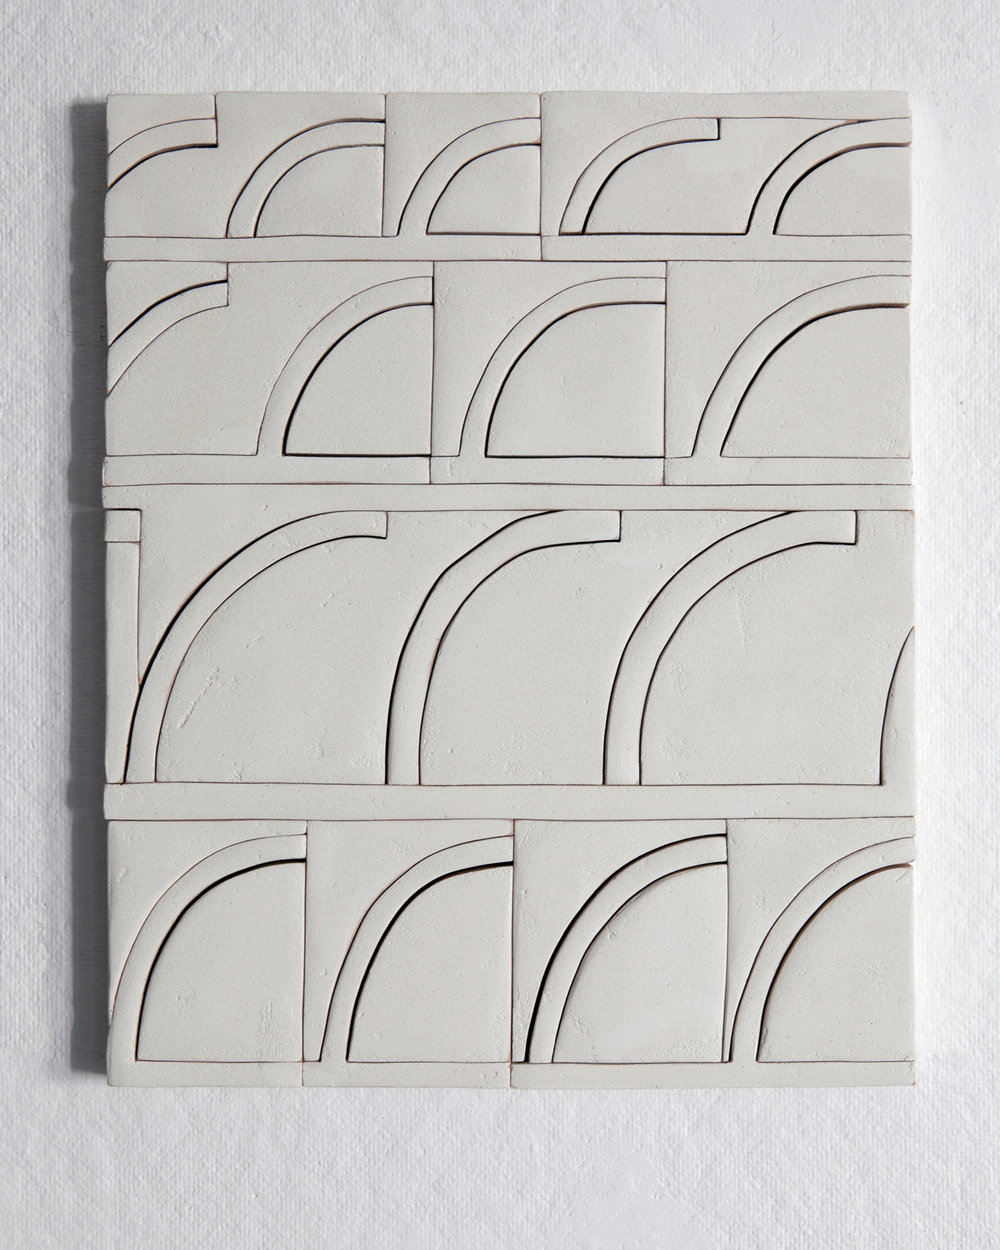 Elizabeth Atterbury,  4 Sets , 2017, Mortar, Plywood and Glue, 15 x 12 x 1 in